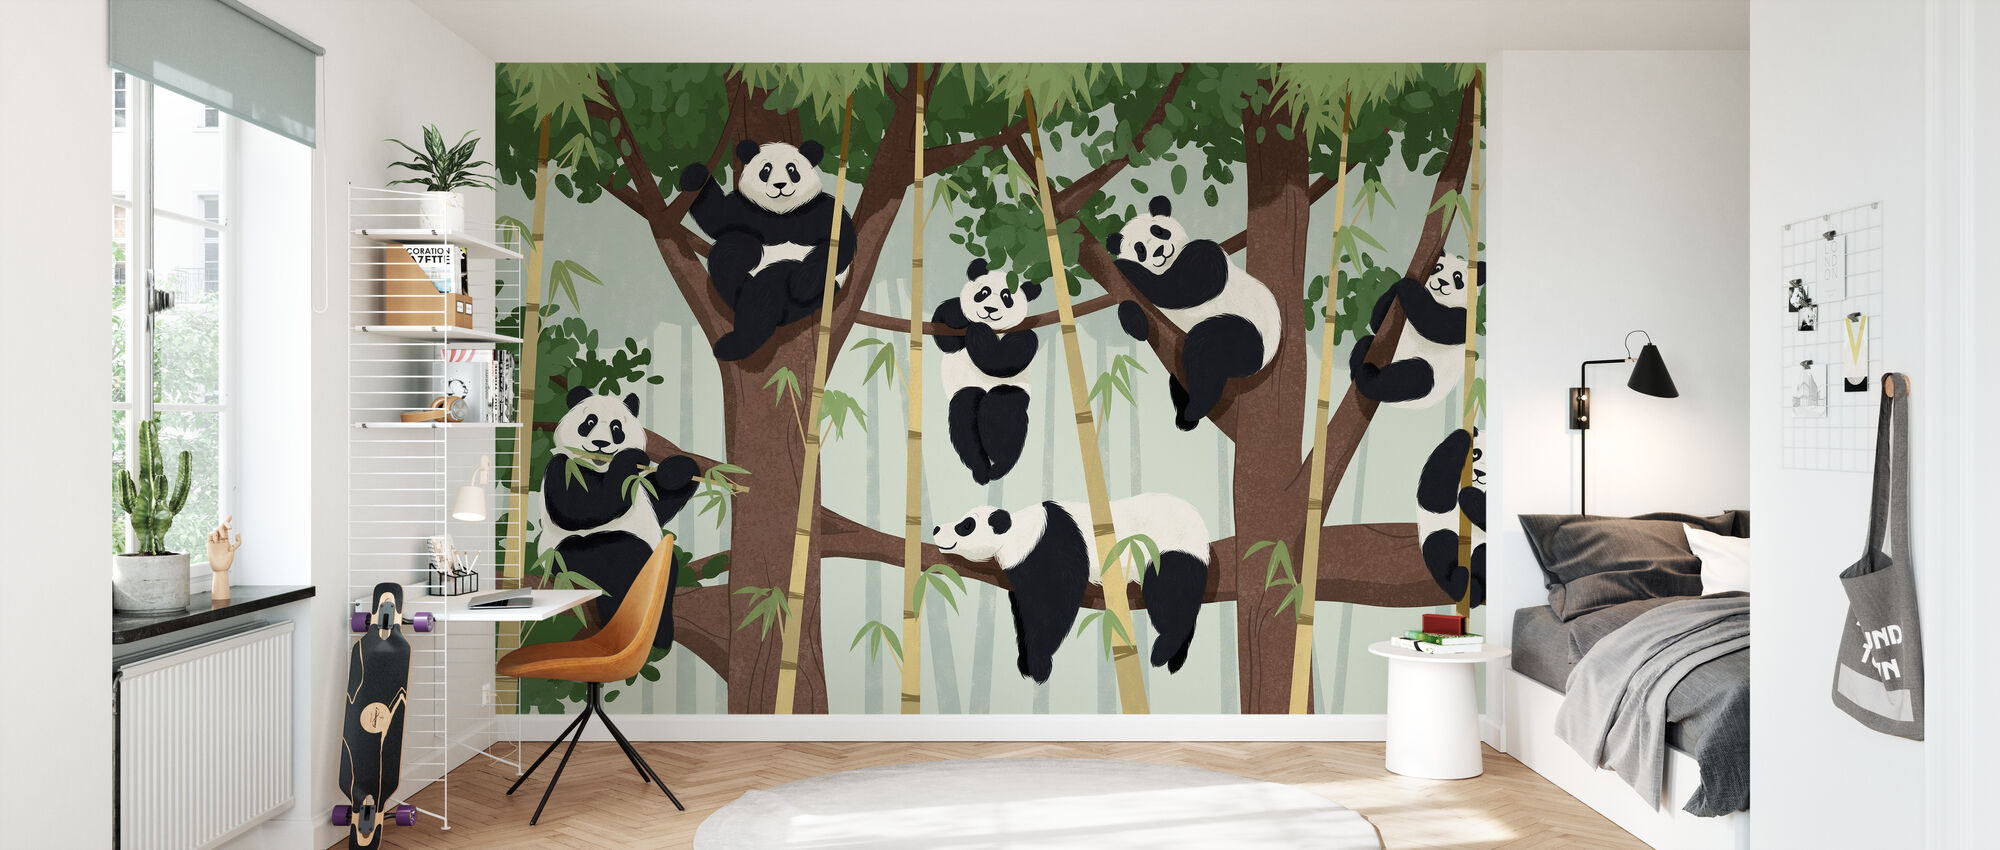 Panda Trees - Wallpaper - Kids Room